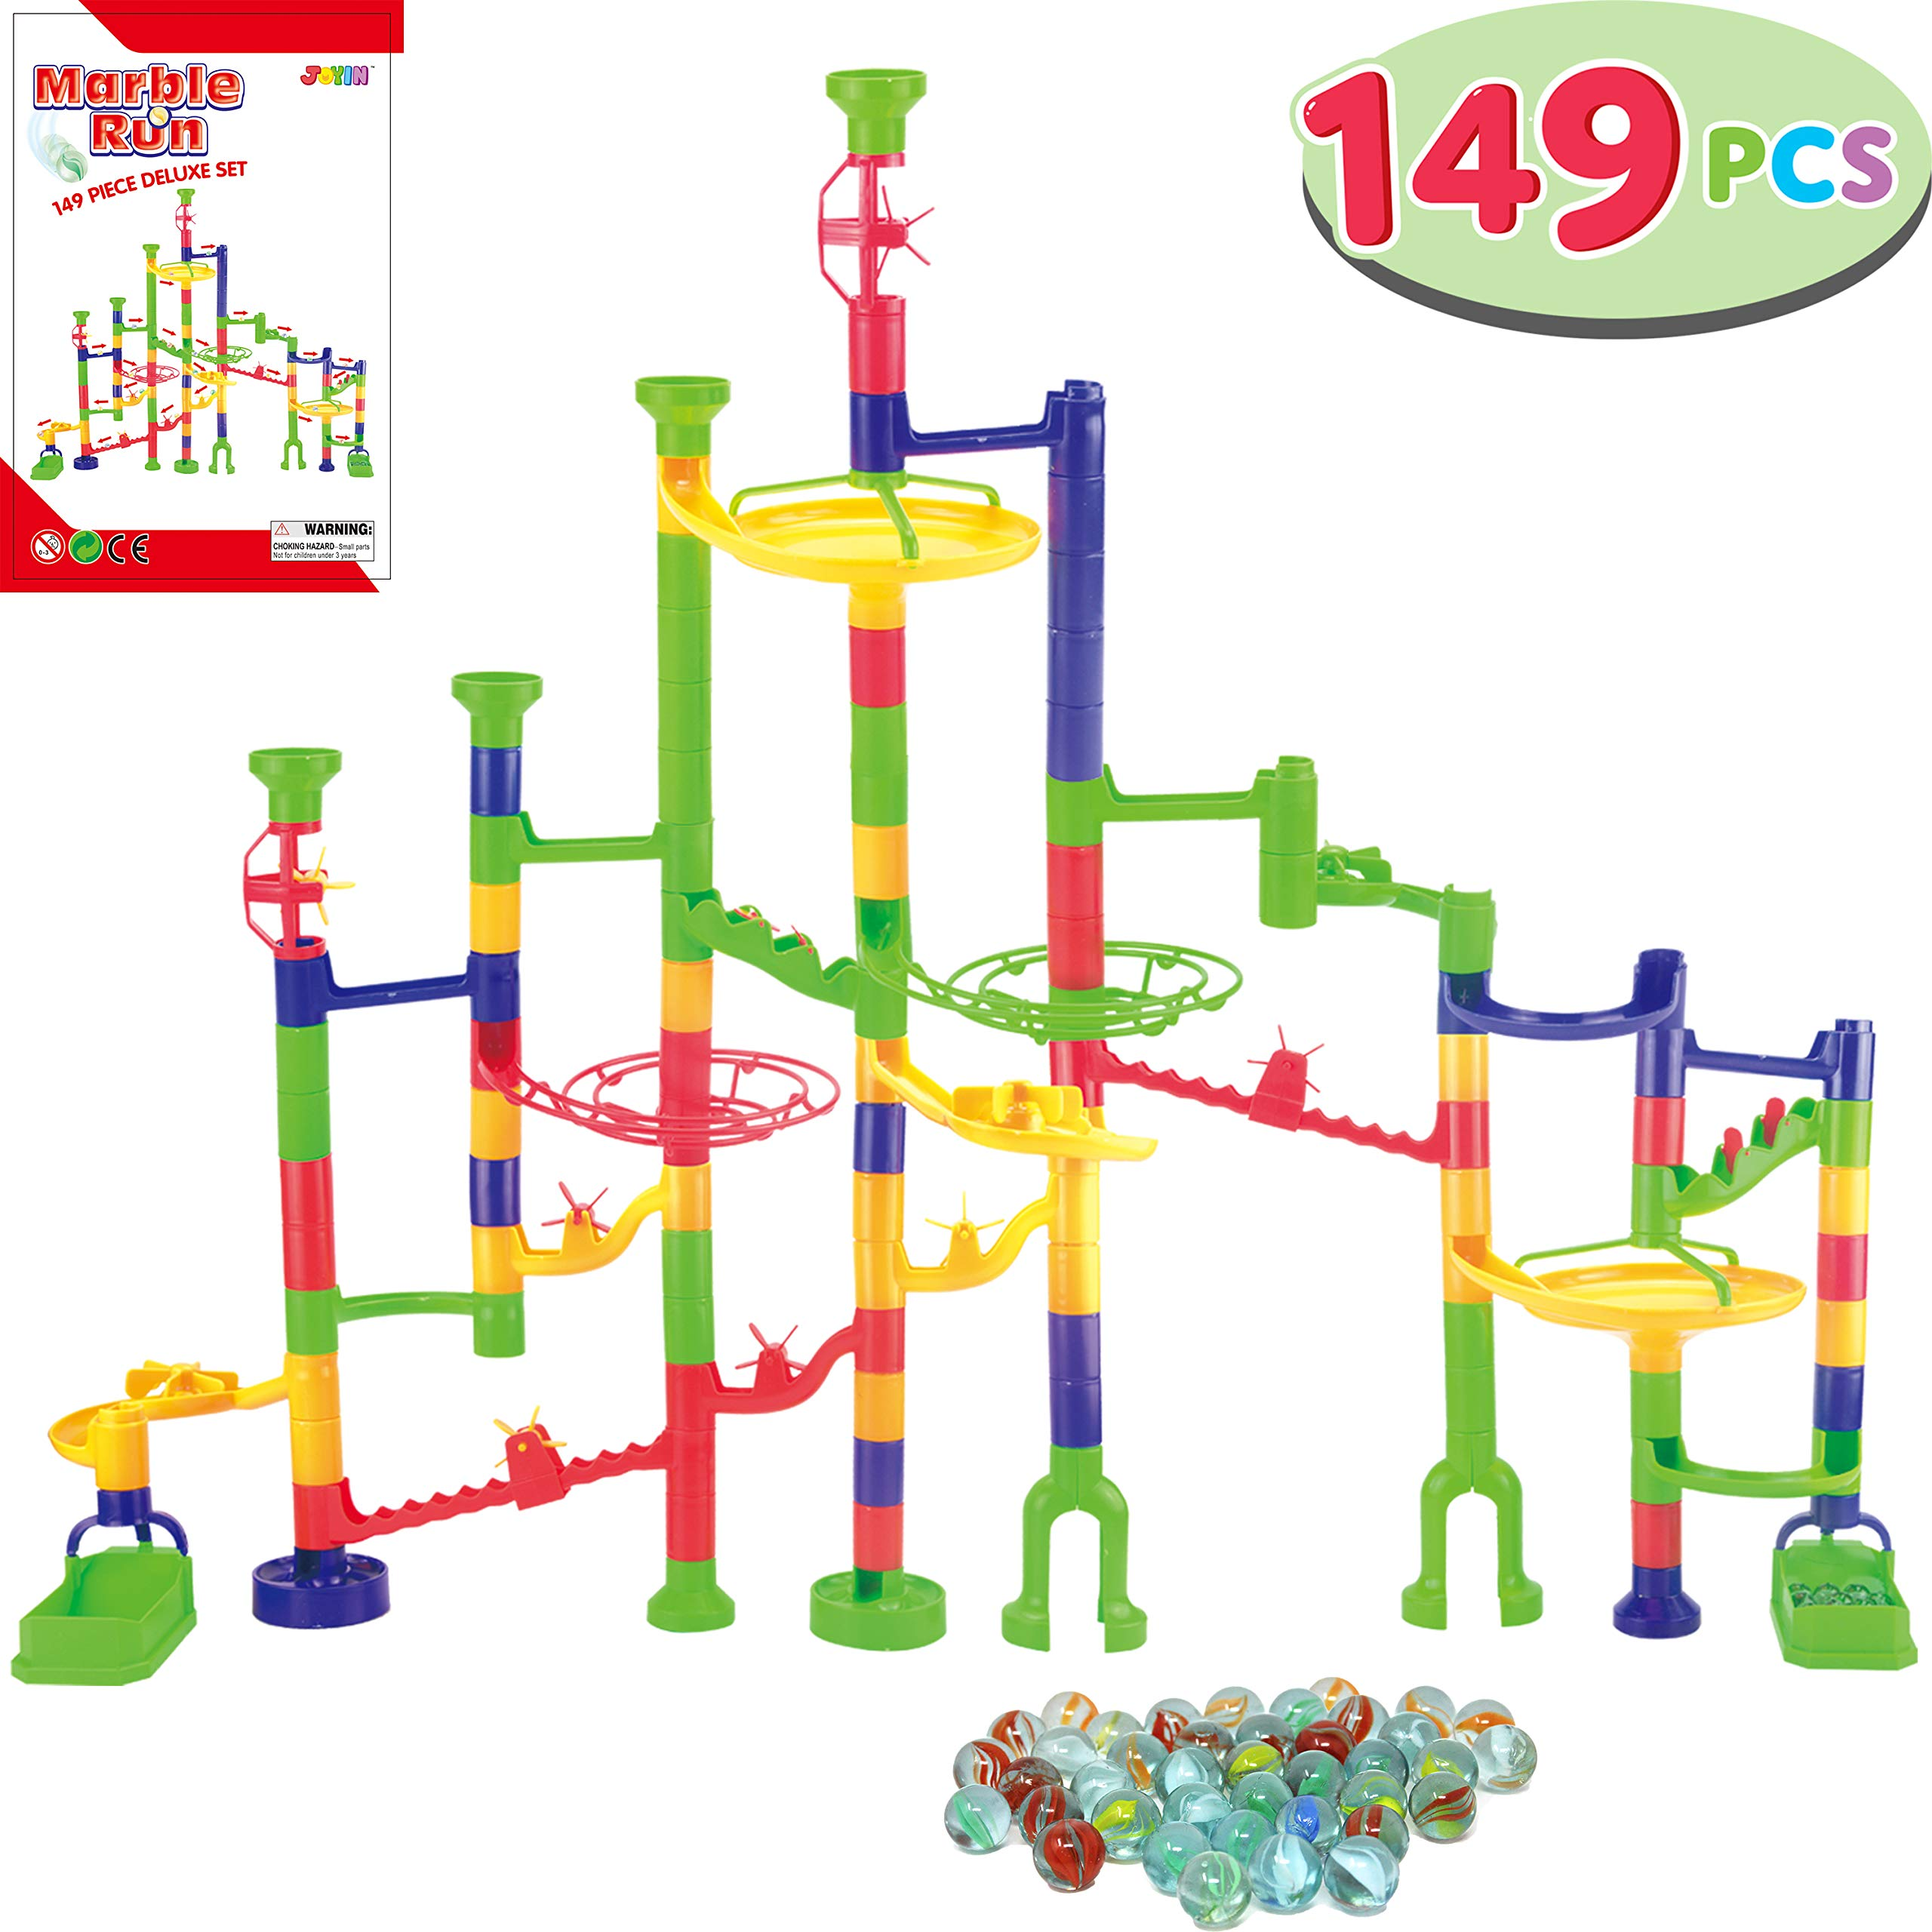 JOYIN 149 Pcs Marble Run Premium Set, Construction Building Blocks Toys, STEM Learning Toy, Educational Building Block Toy(109 Solid-Colors Plastic Pieces + 40 Glass Marbles)